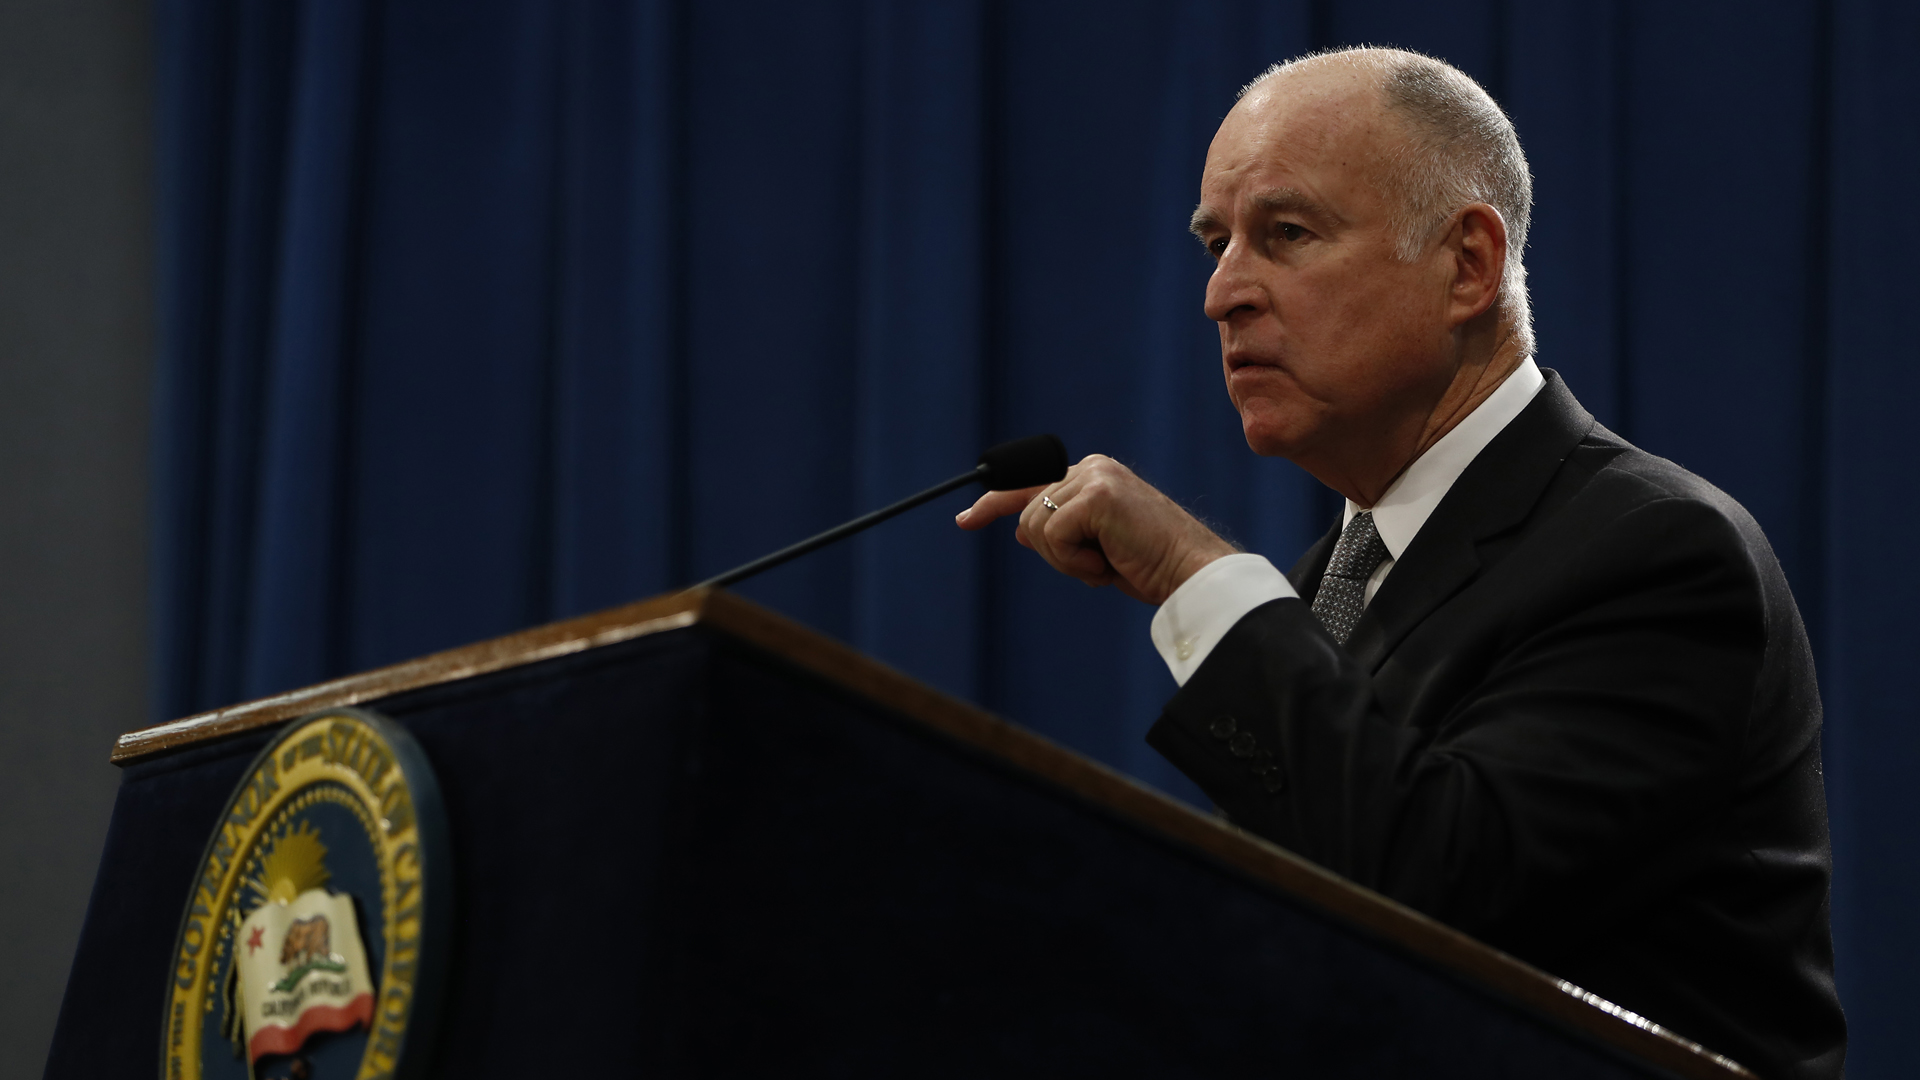 Governor Jerry Brown speaks during a press conference at the California State Capitol on March 7, 2018, in Sacramento, California. (Credit: Stephen Lam/Getty Images)